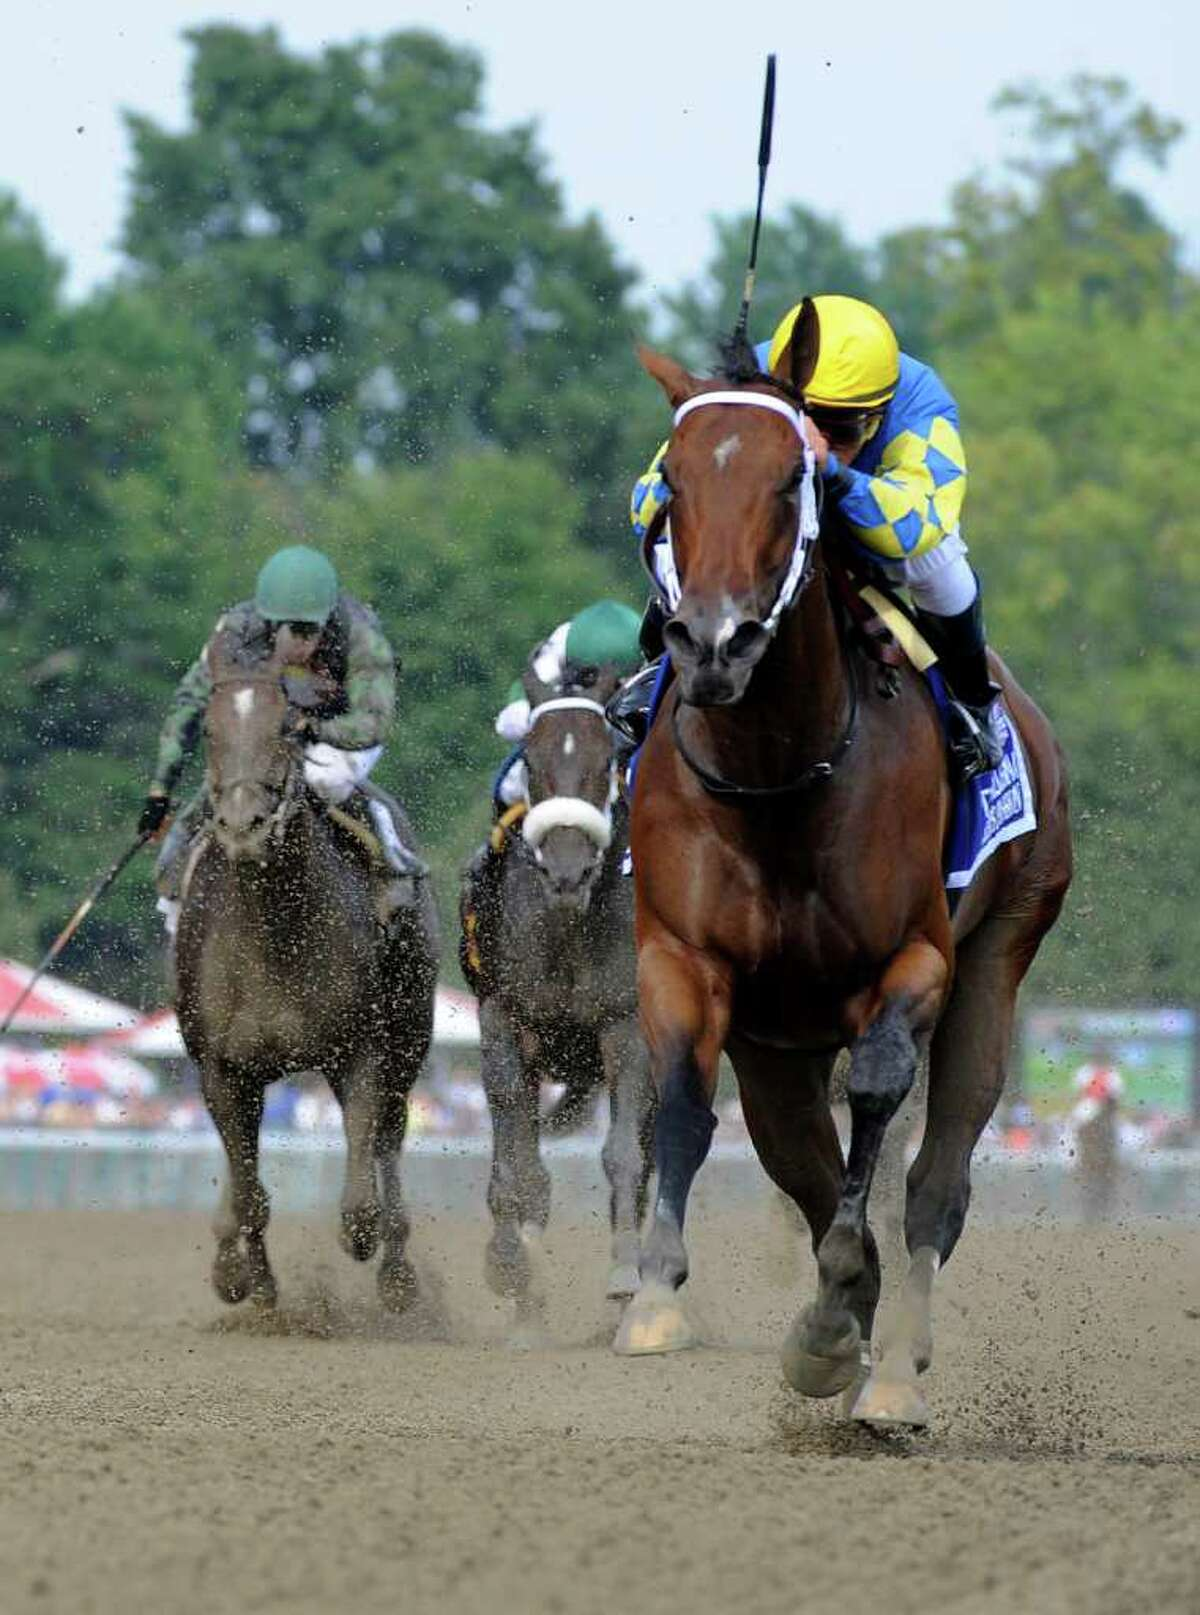 Hilda's Passion with jockey Javier Castellano wins the 33rd running of The Ballerina at the Saratoga Race Course in Saratoga springs, N.Y. Aug 27, 2011. (Skip Dickstein / Times Union)